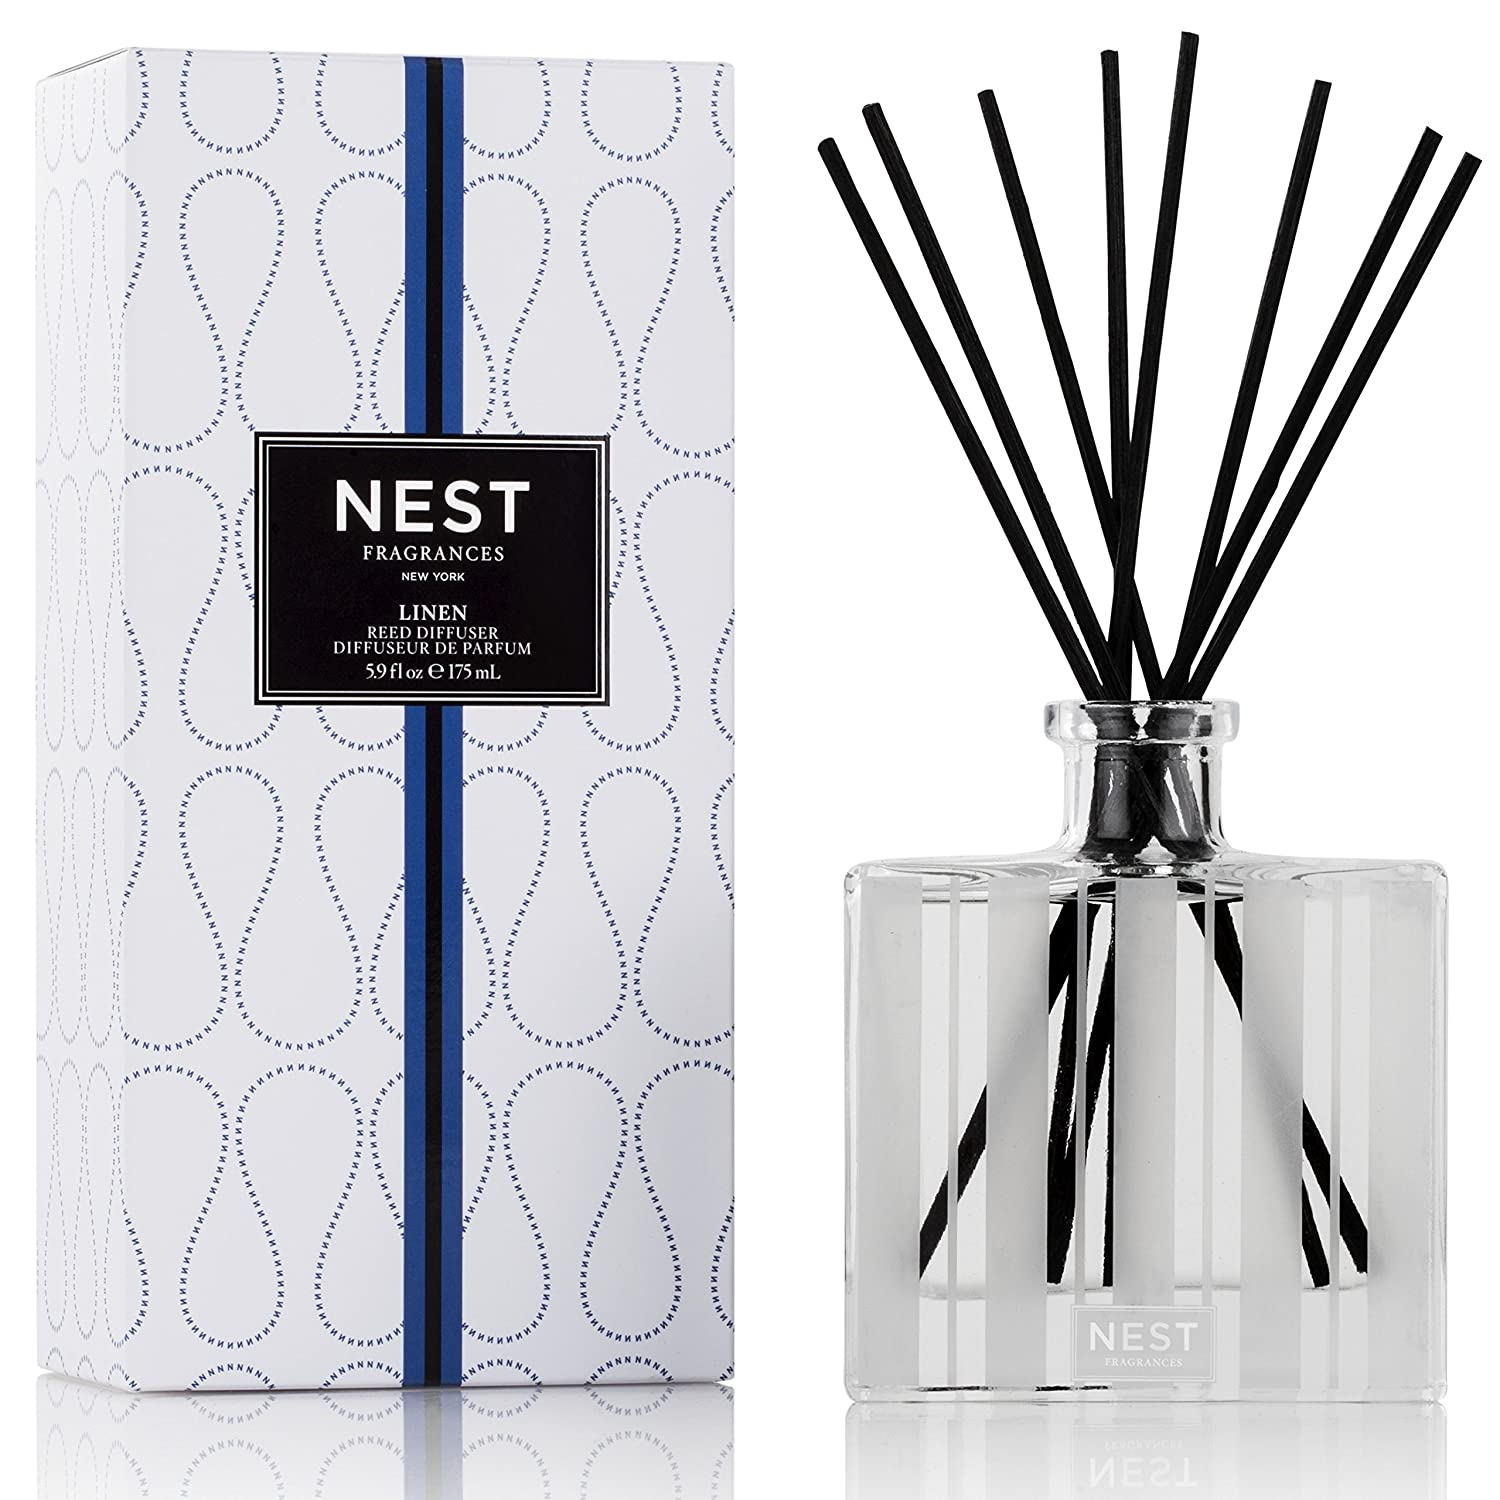 NEST Fragrances Linen Reed Diffuser, 5.9 fl. oz. NEST08LN002